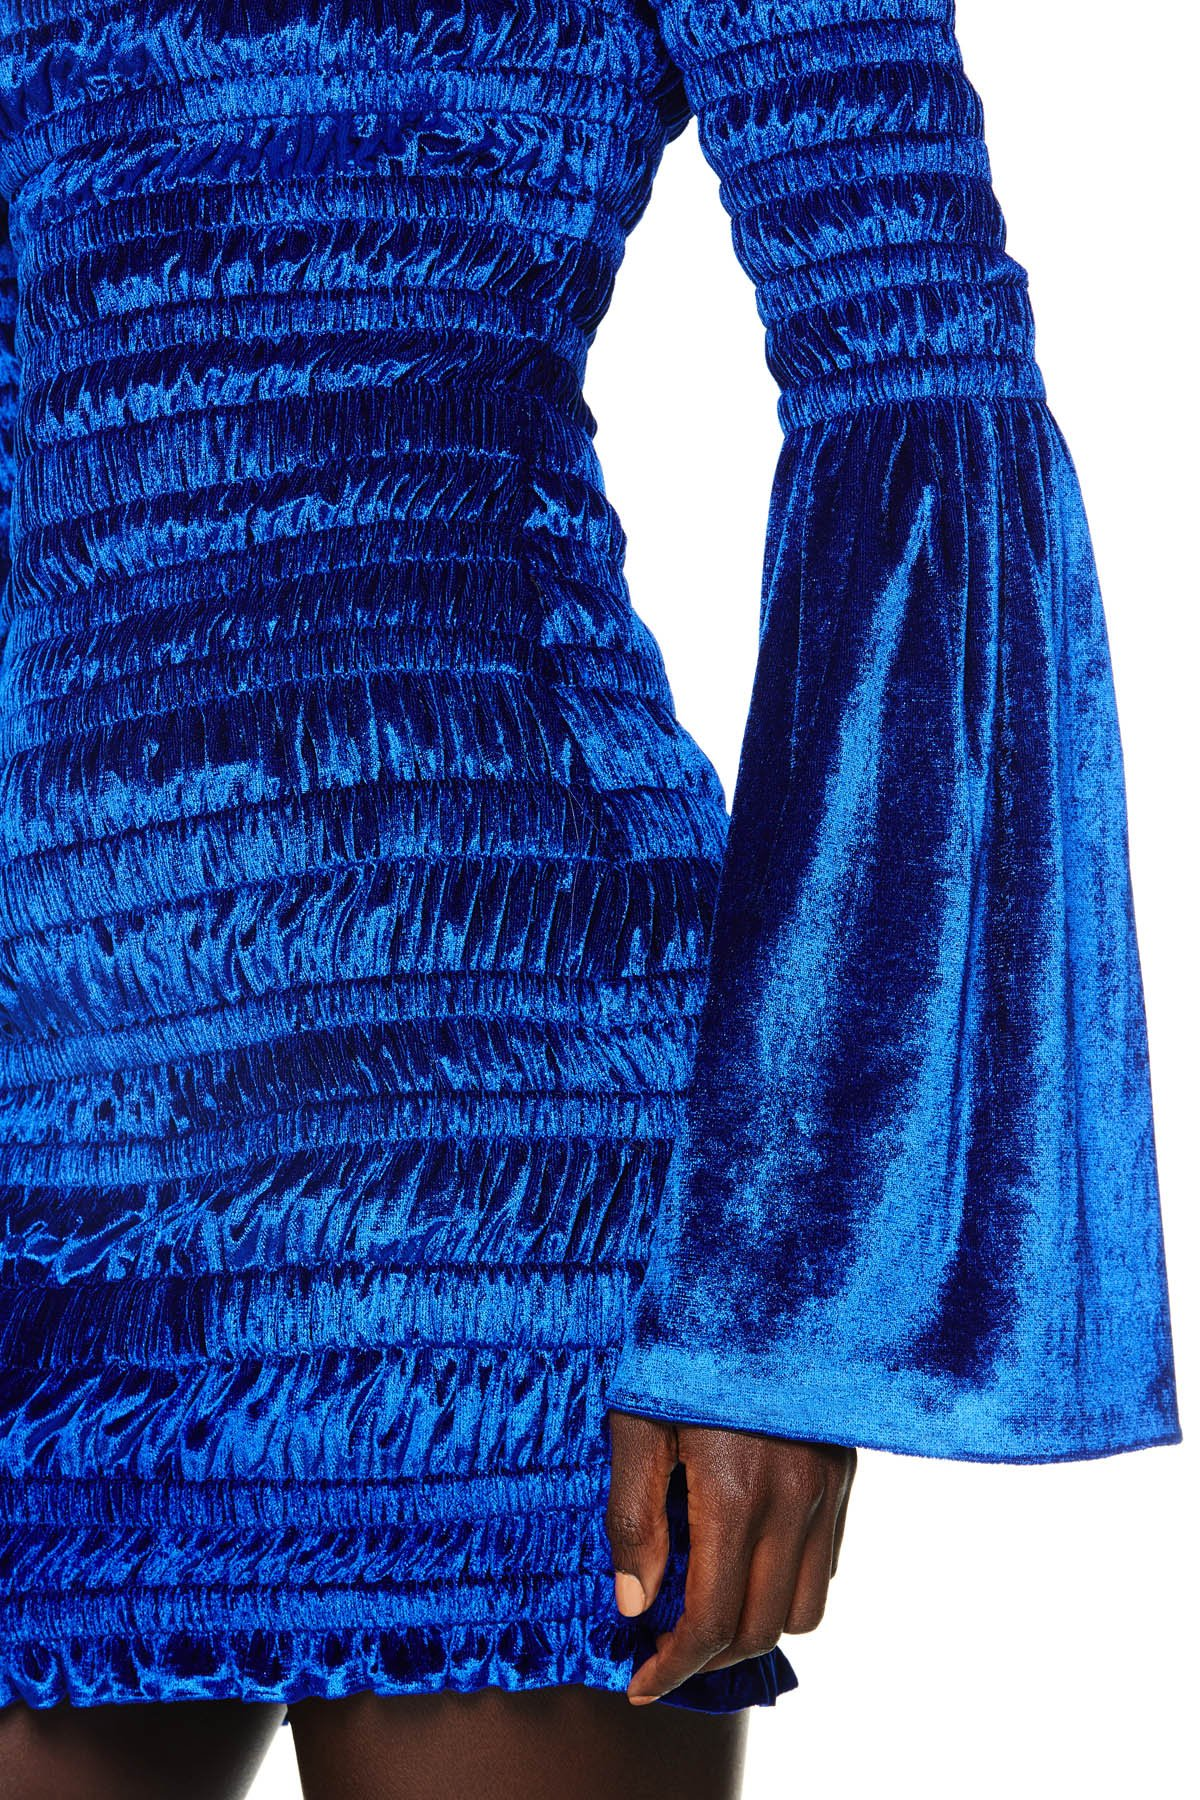 Off the shoulder long sleeve mini dress with ruched detailing. Available in Royal Blue.